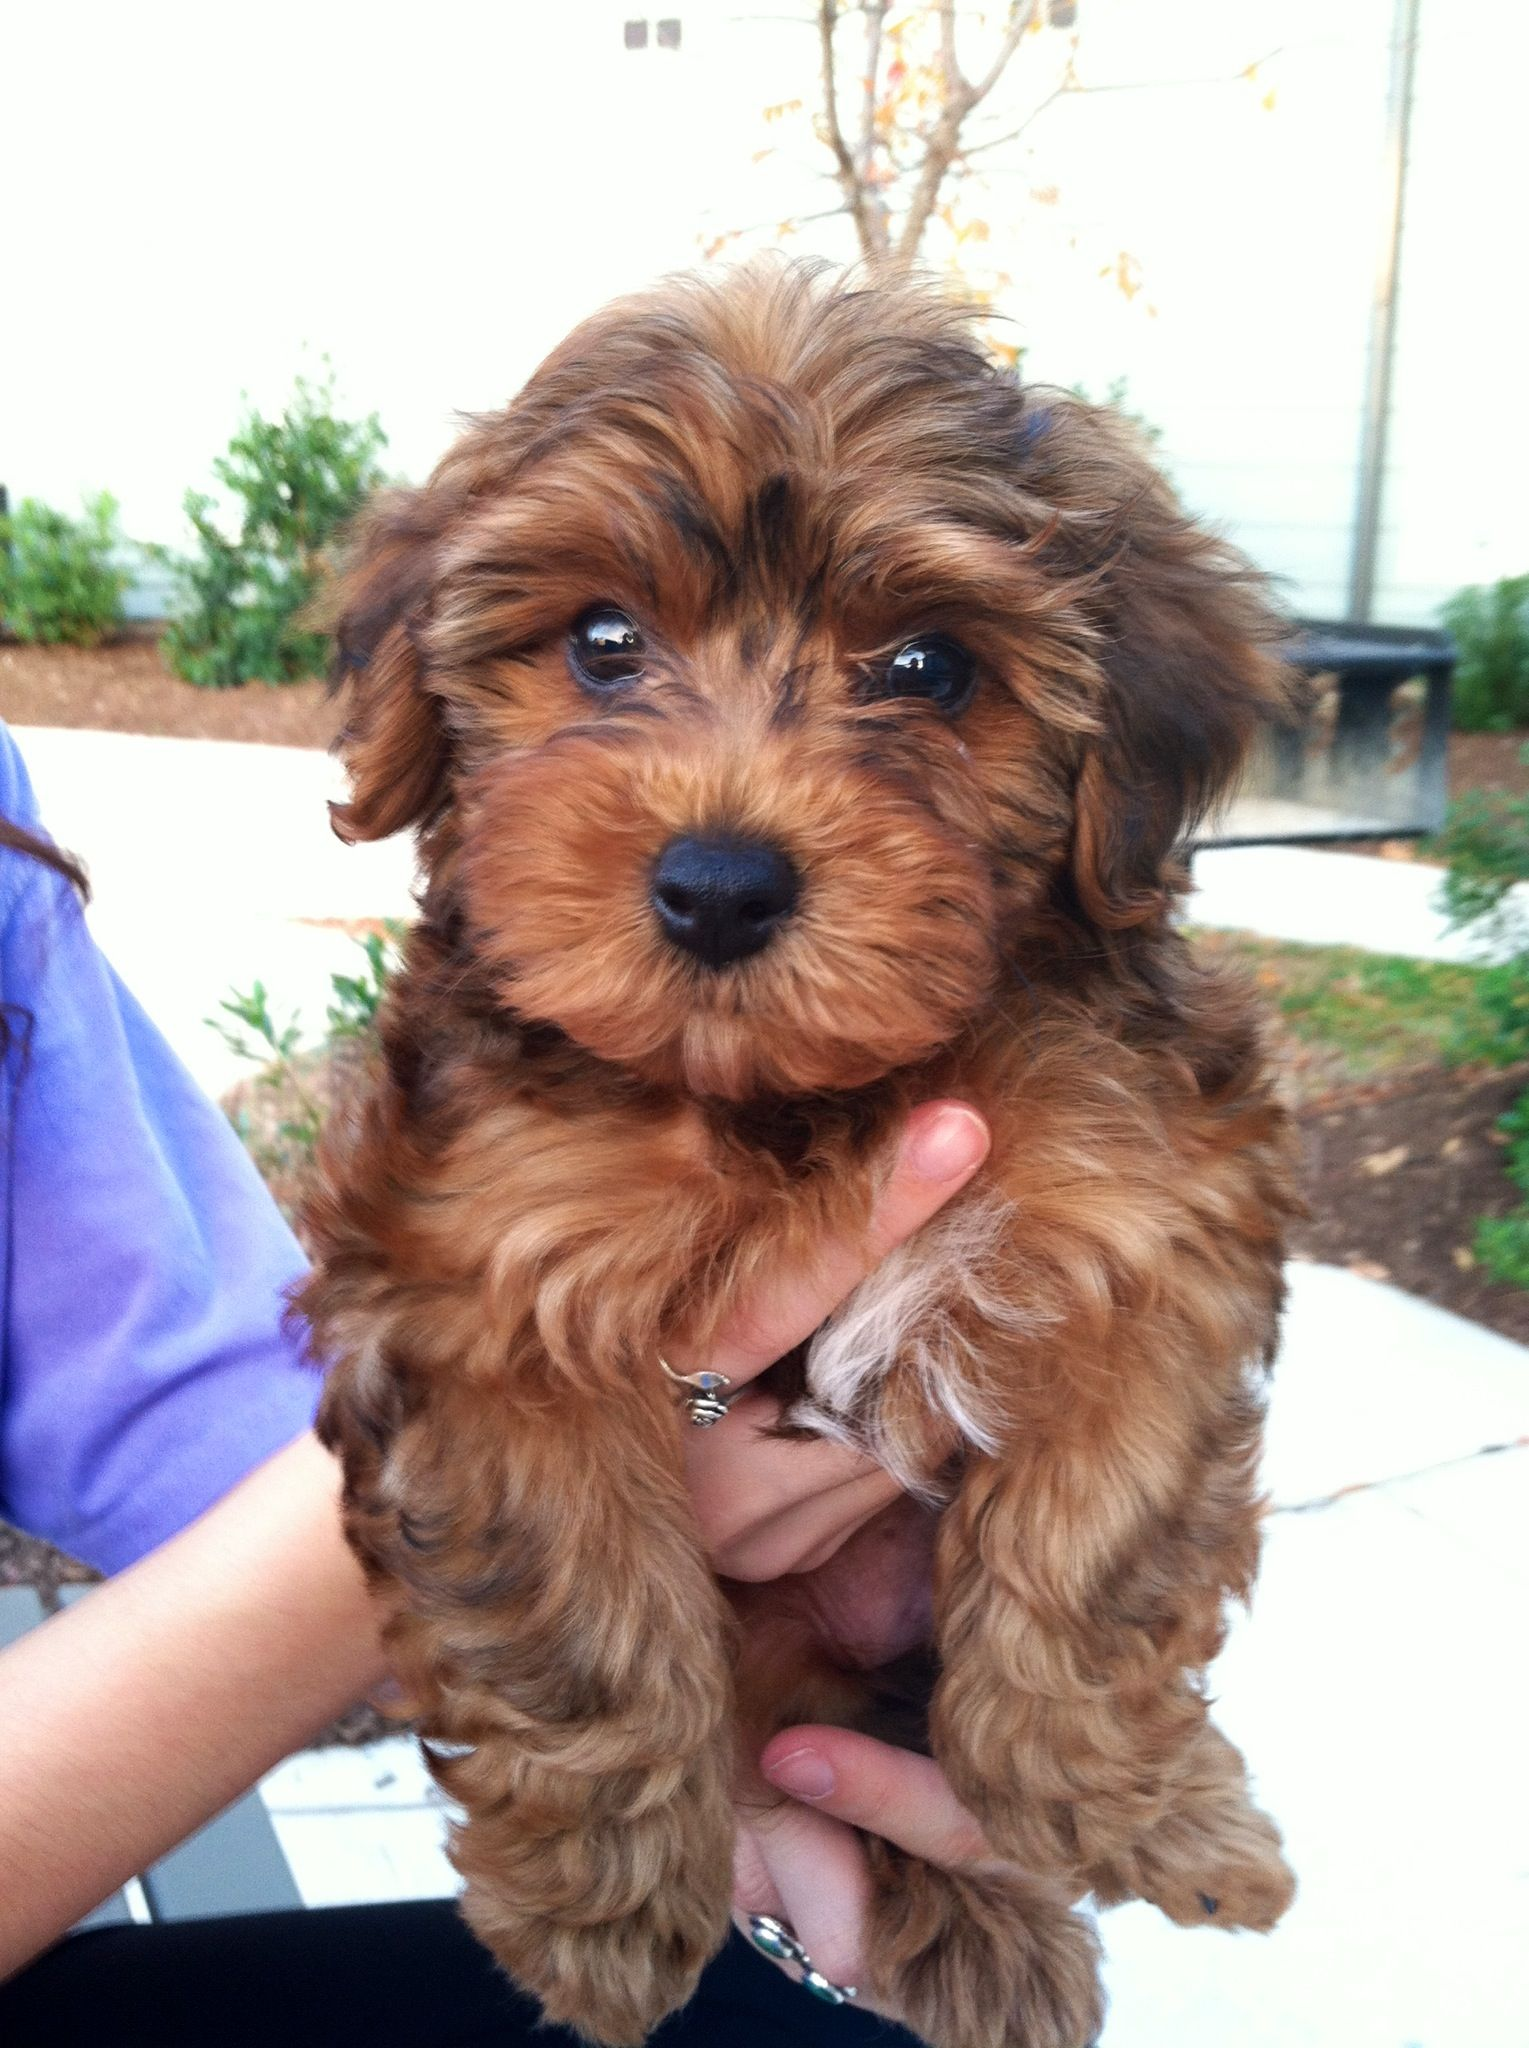 Yorkie Poo - The Cutest and Adorable Mix of Yorkie and ...